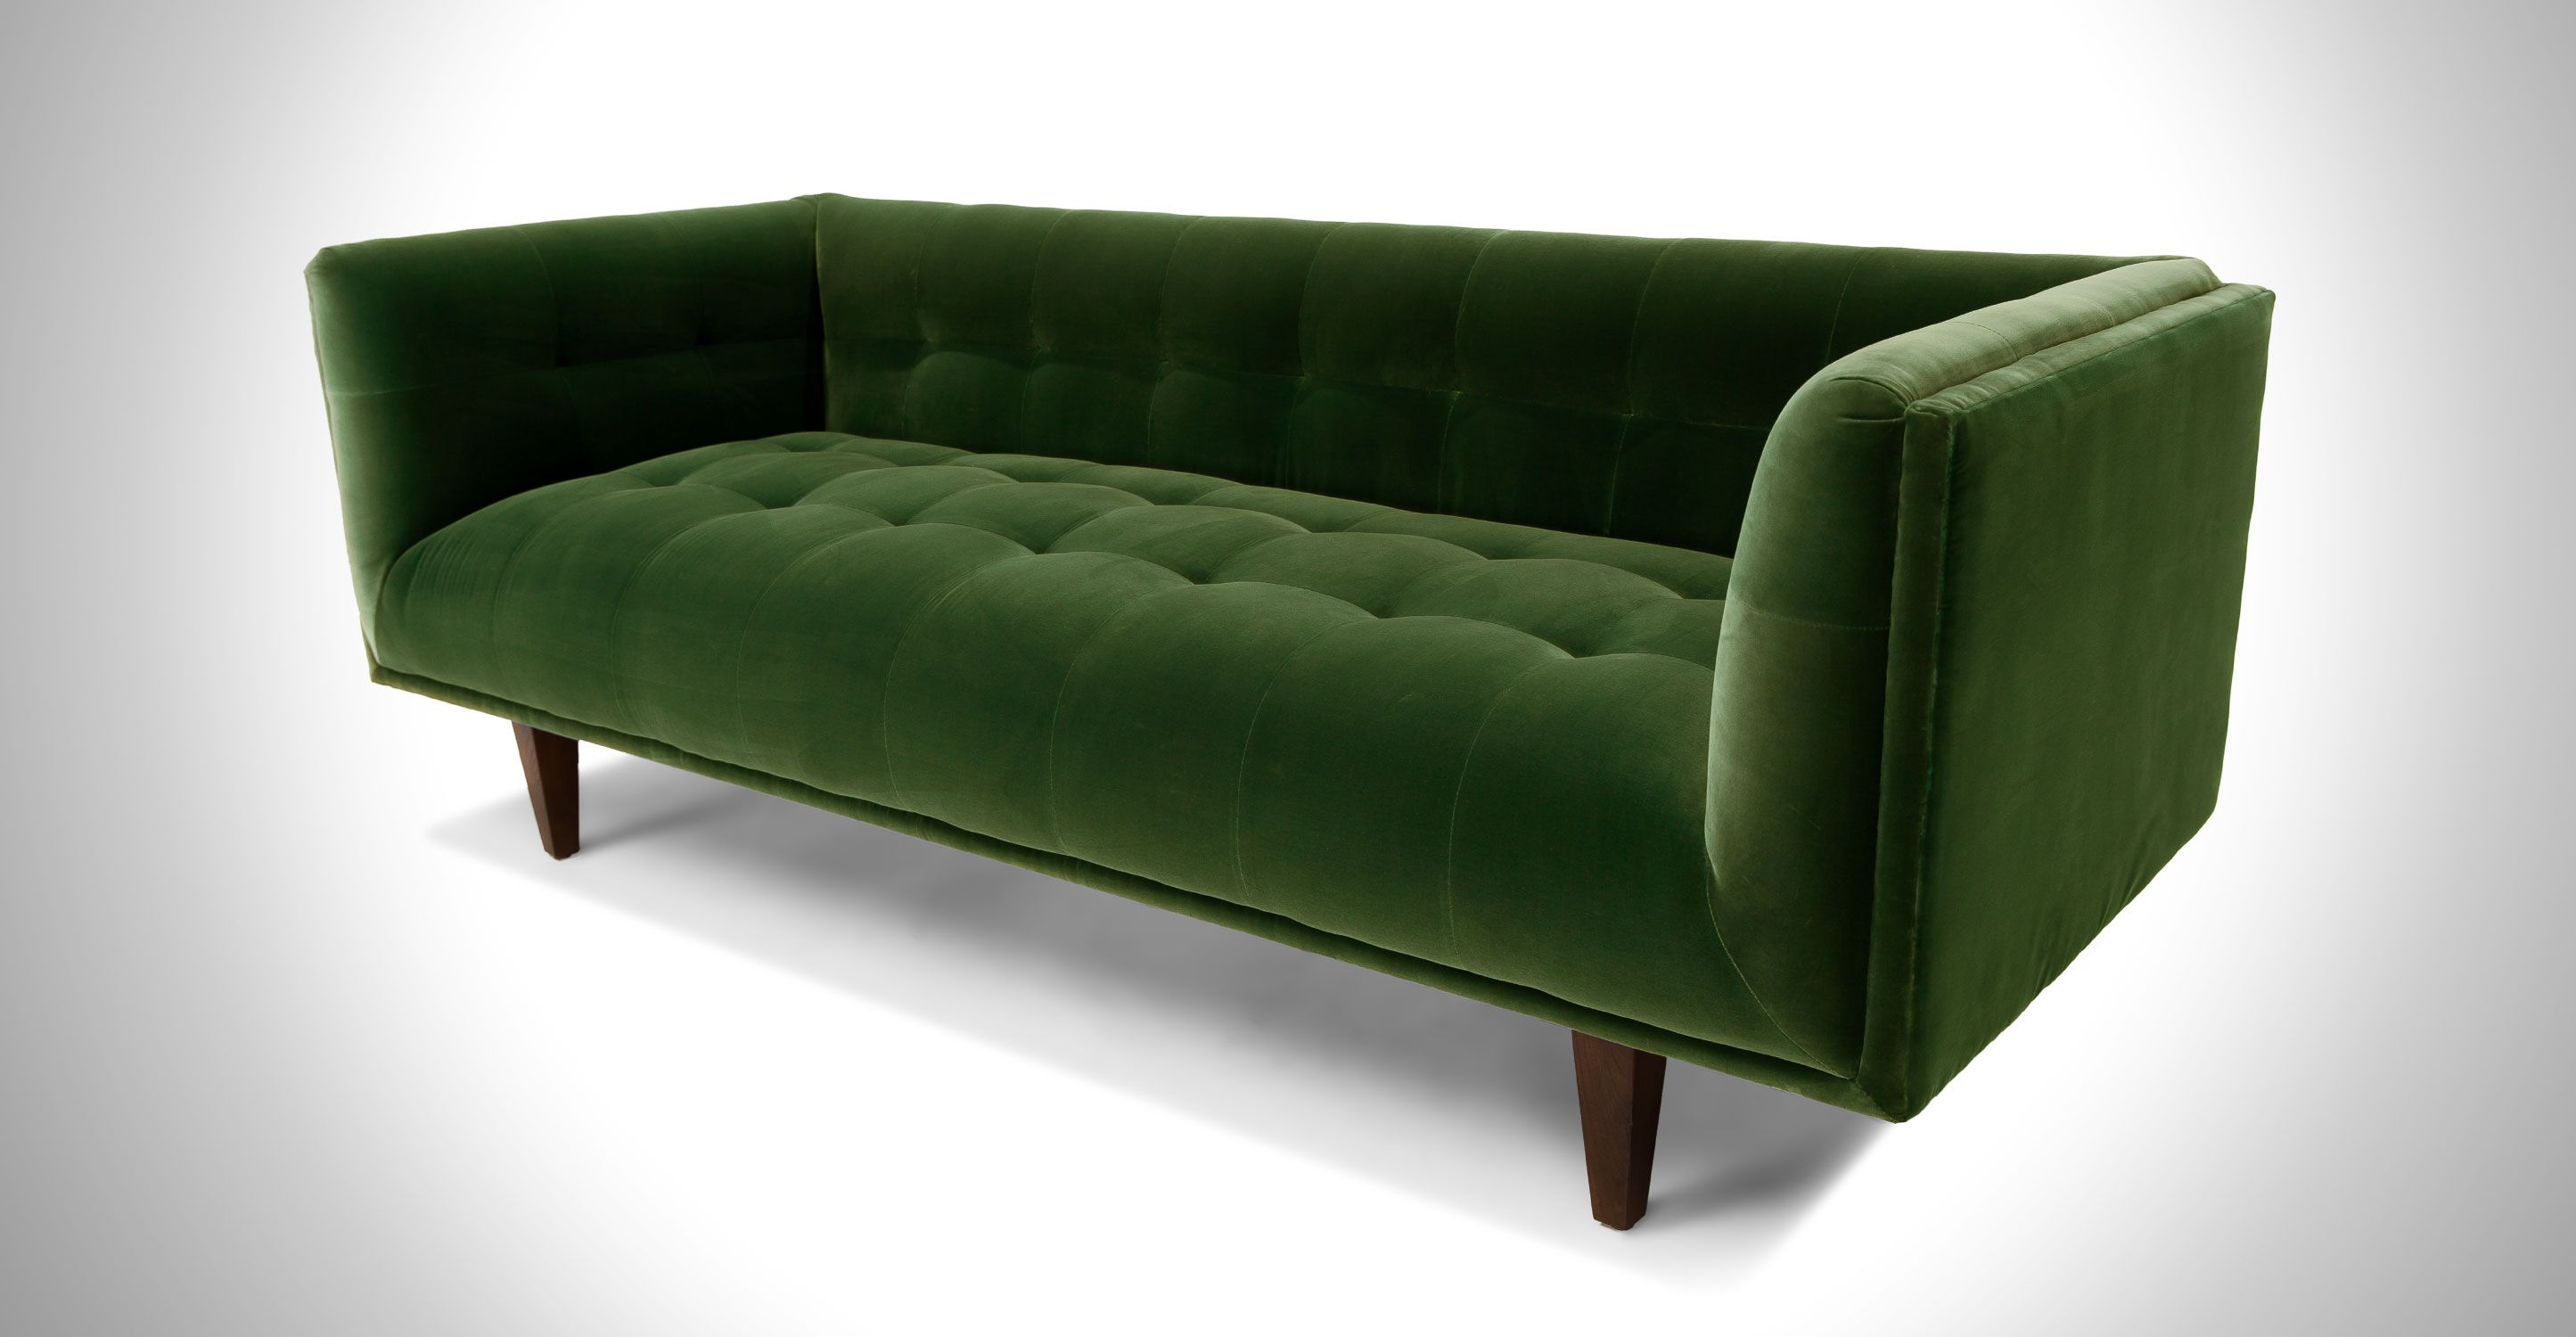 Green Velvet Sofa With Steel Legs | Article Mirage Contemporary Furniture |  Scandinavian Furniture, Sofa Sofa And Mid Century